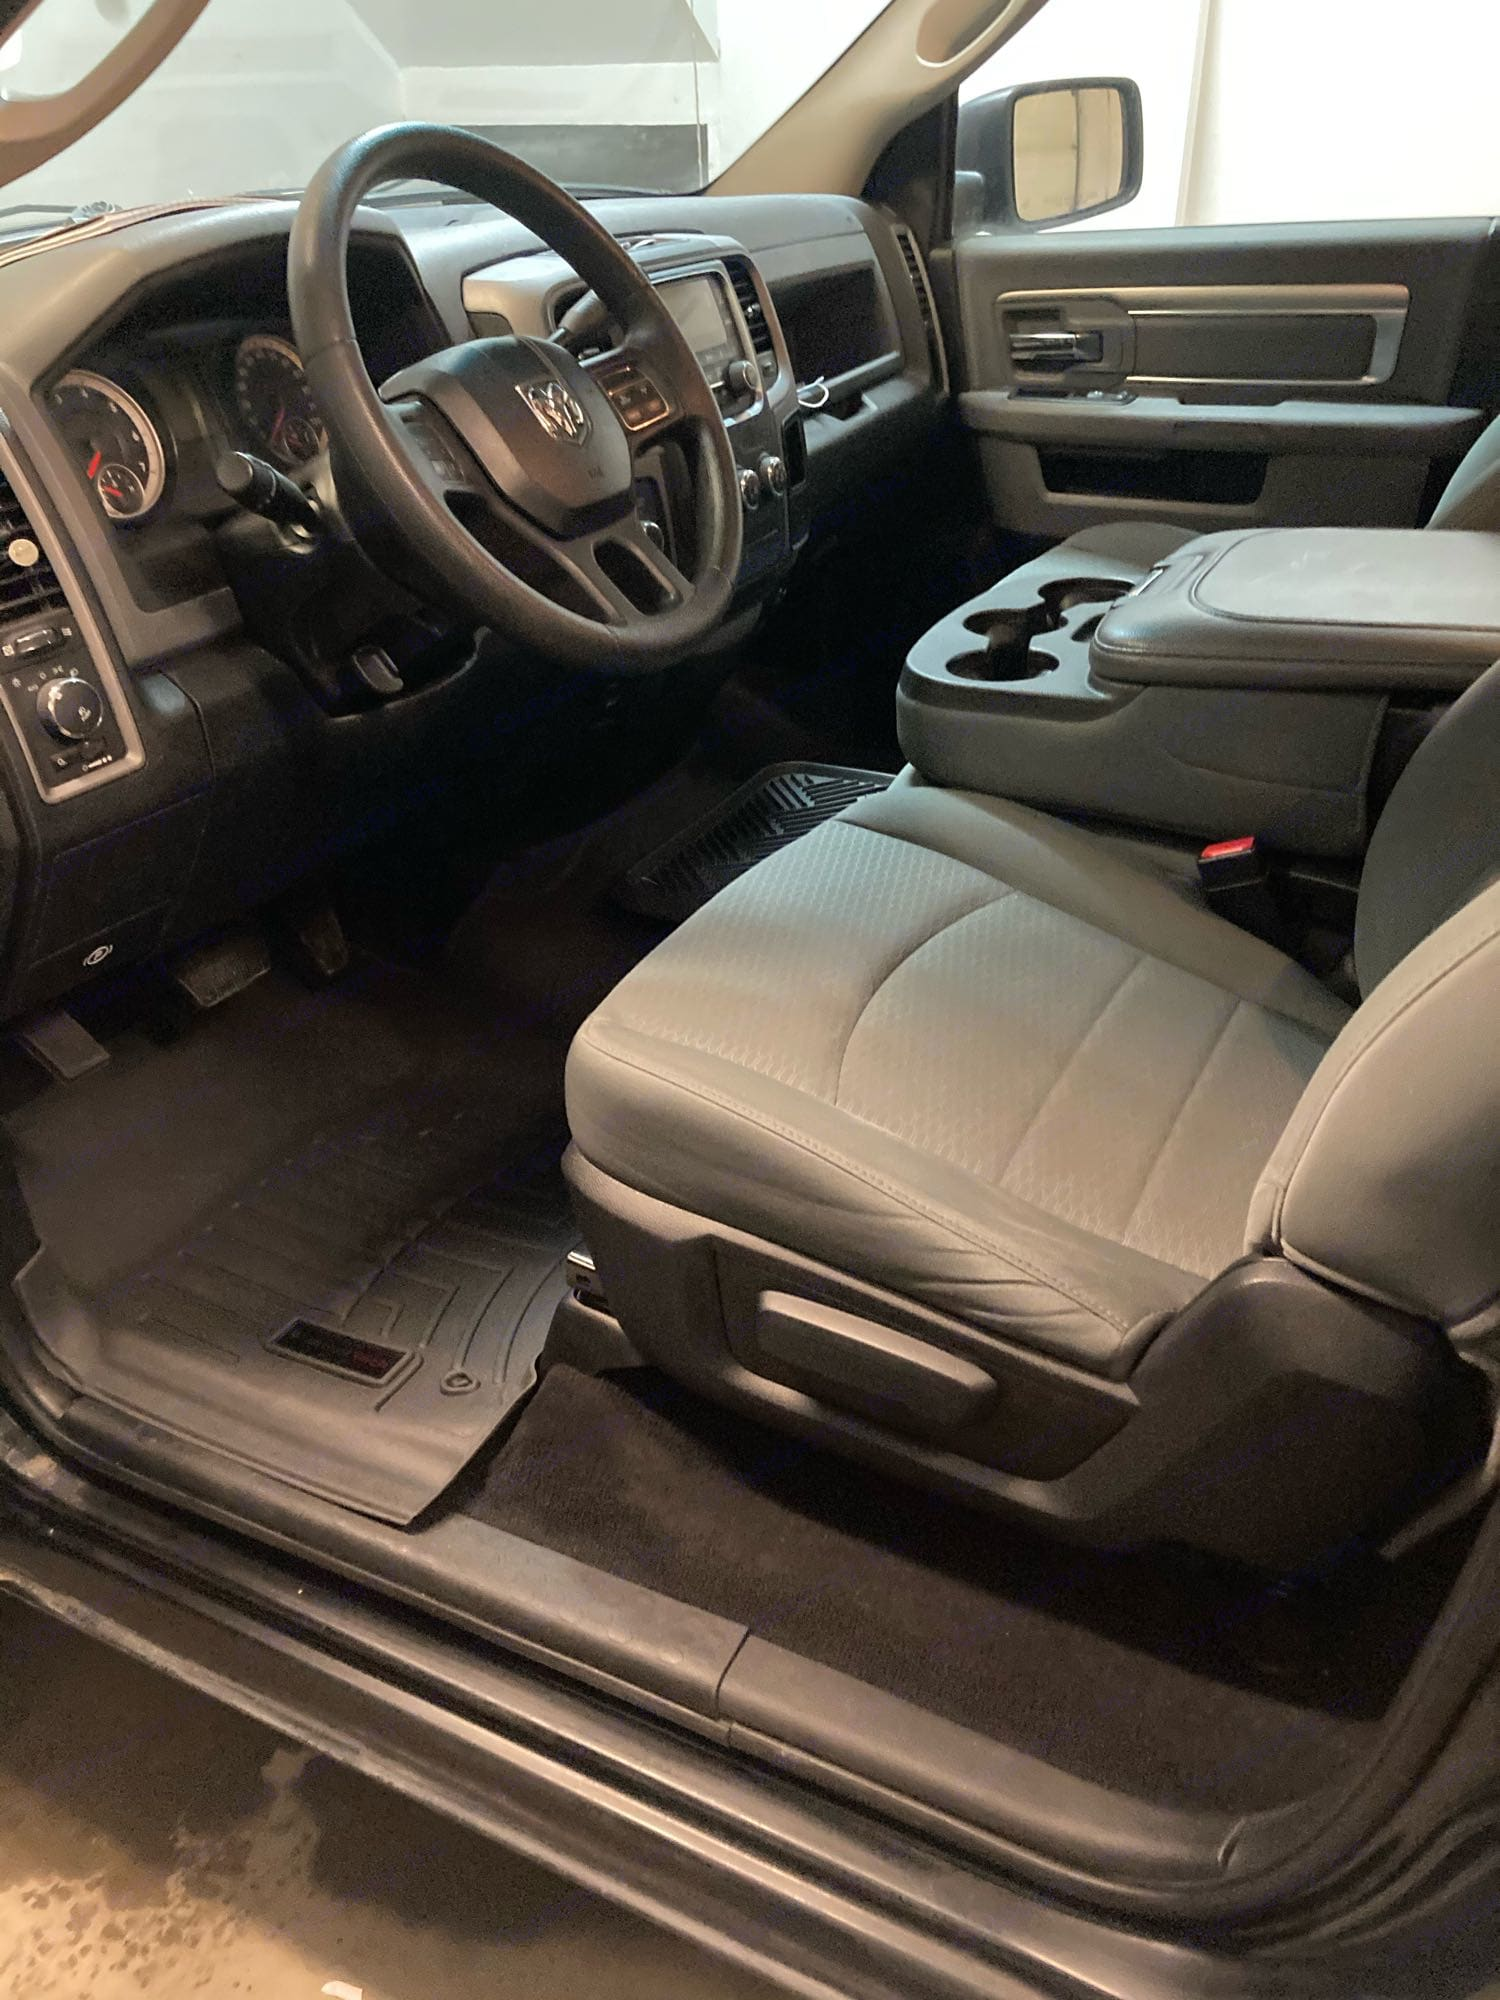 Weather-tech floor mats ready for the Prince William sound rain. Ram 1500 2015